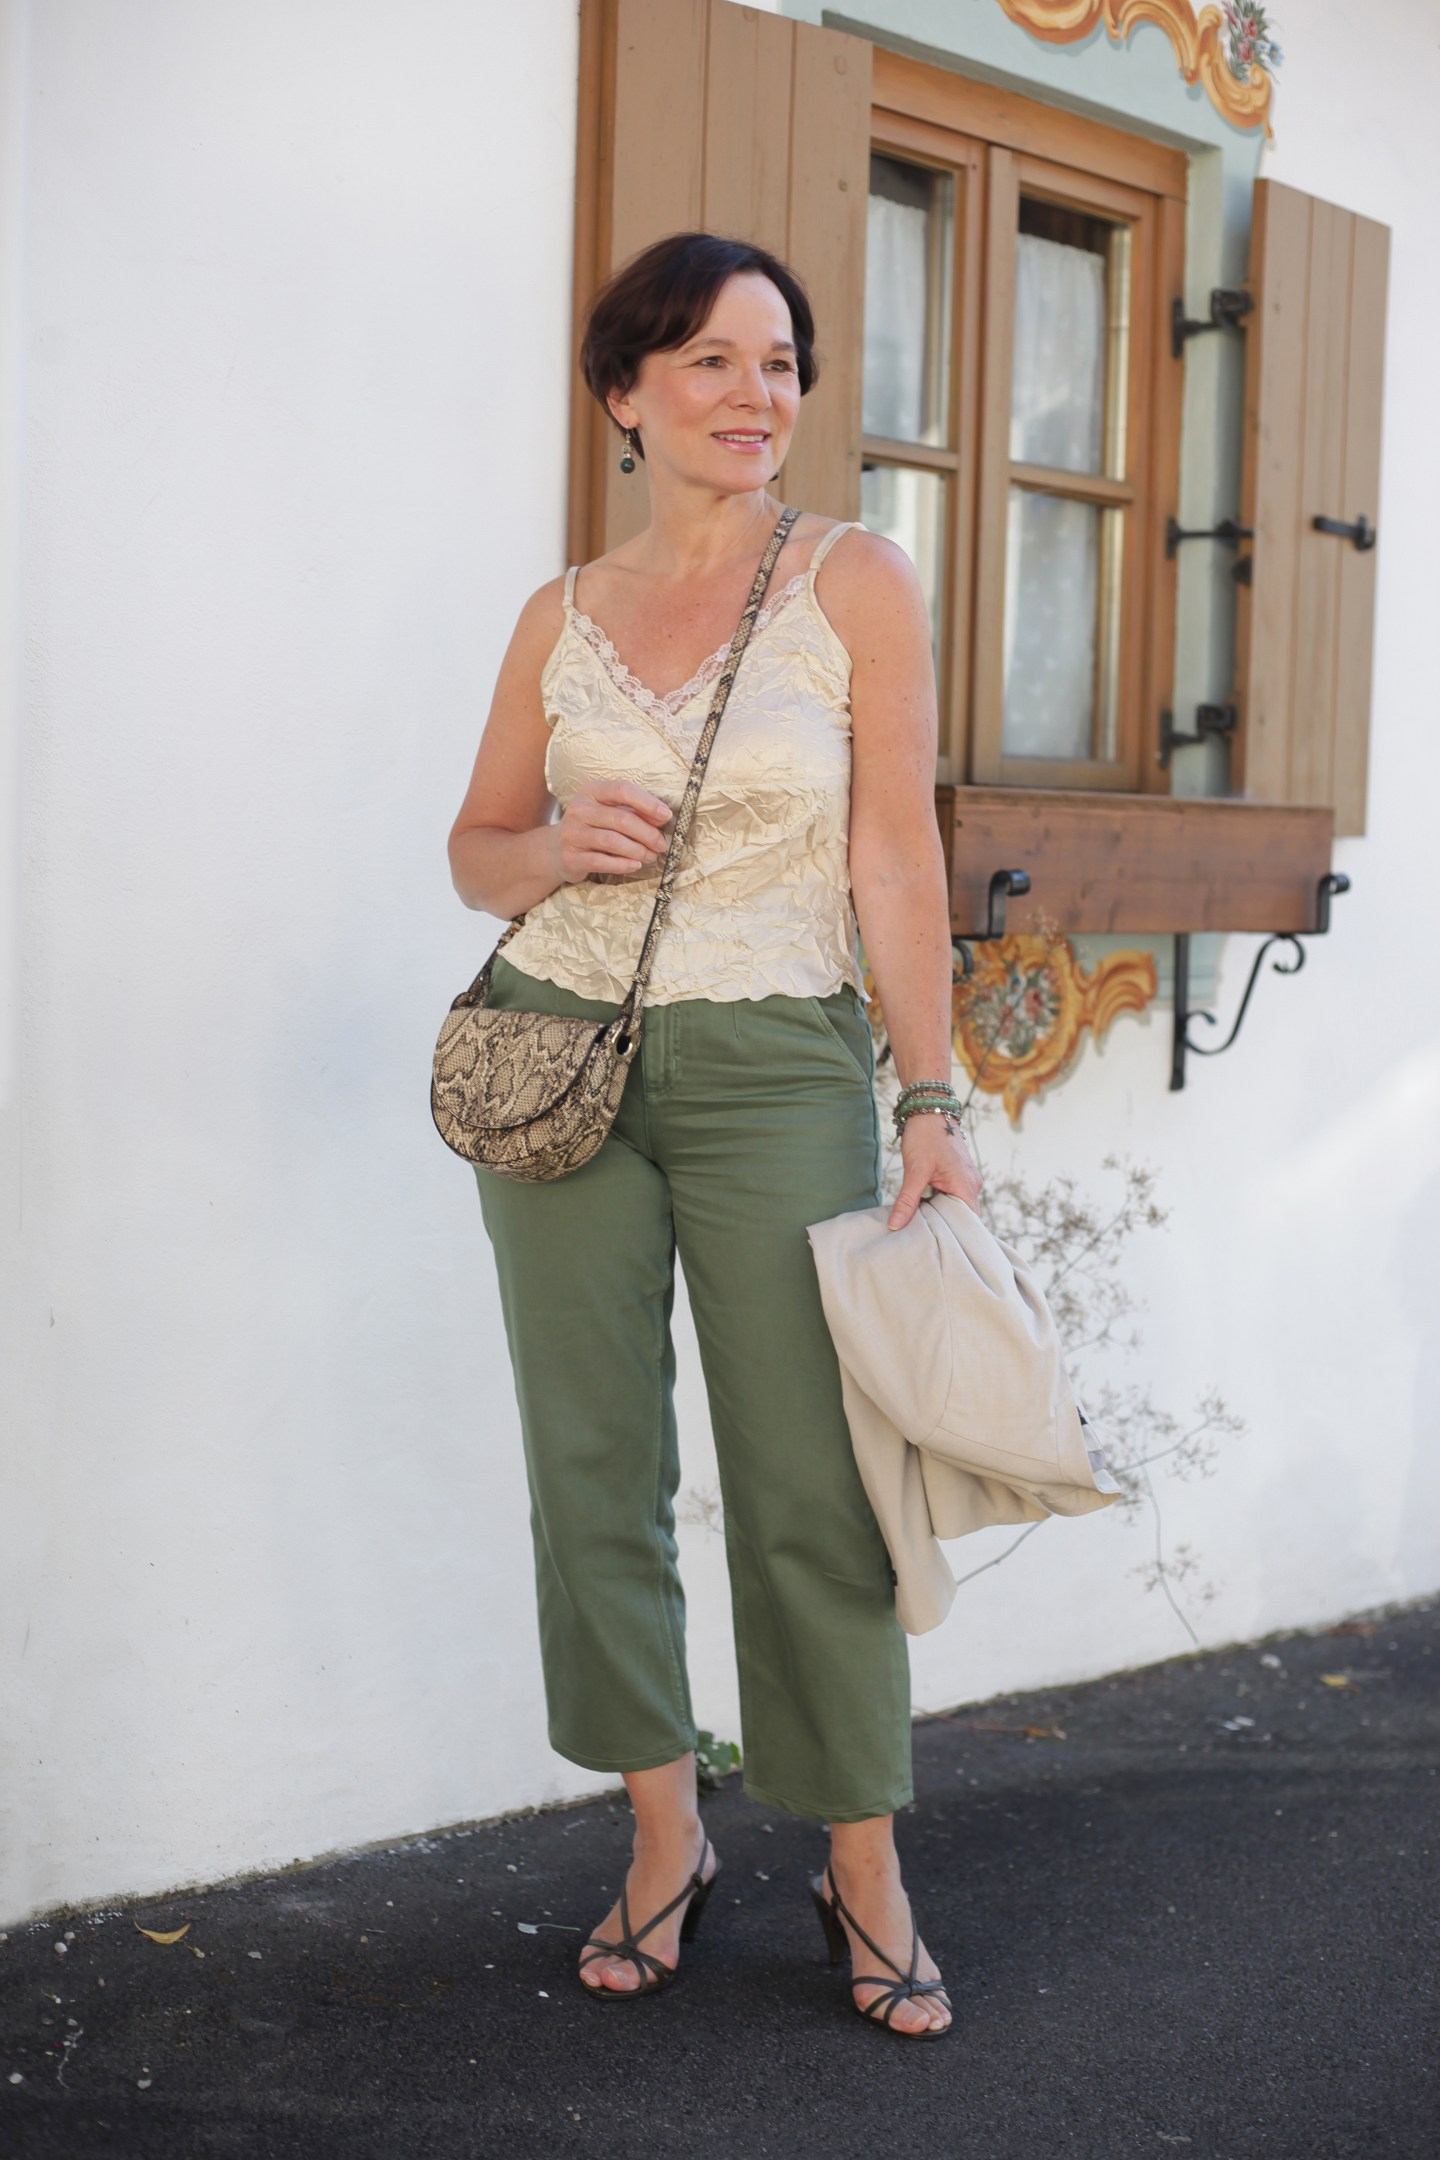 LadyofStyle Lingerietop Chinos Blazer Sommerlook 50plus Blogger